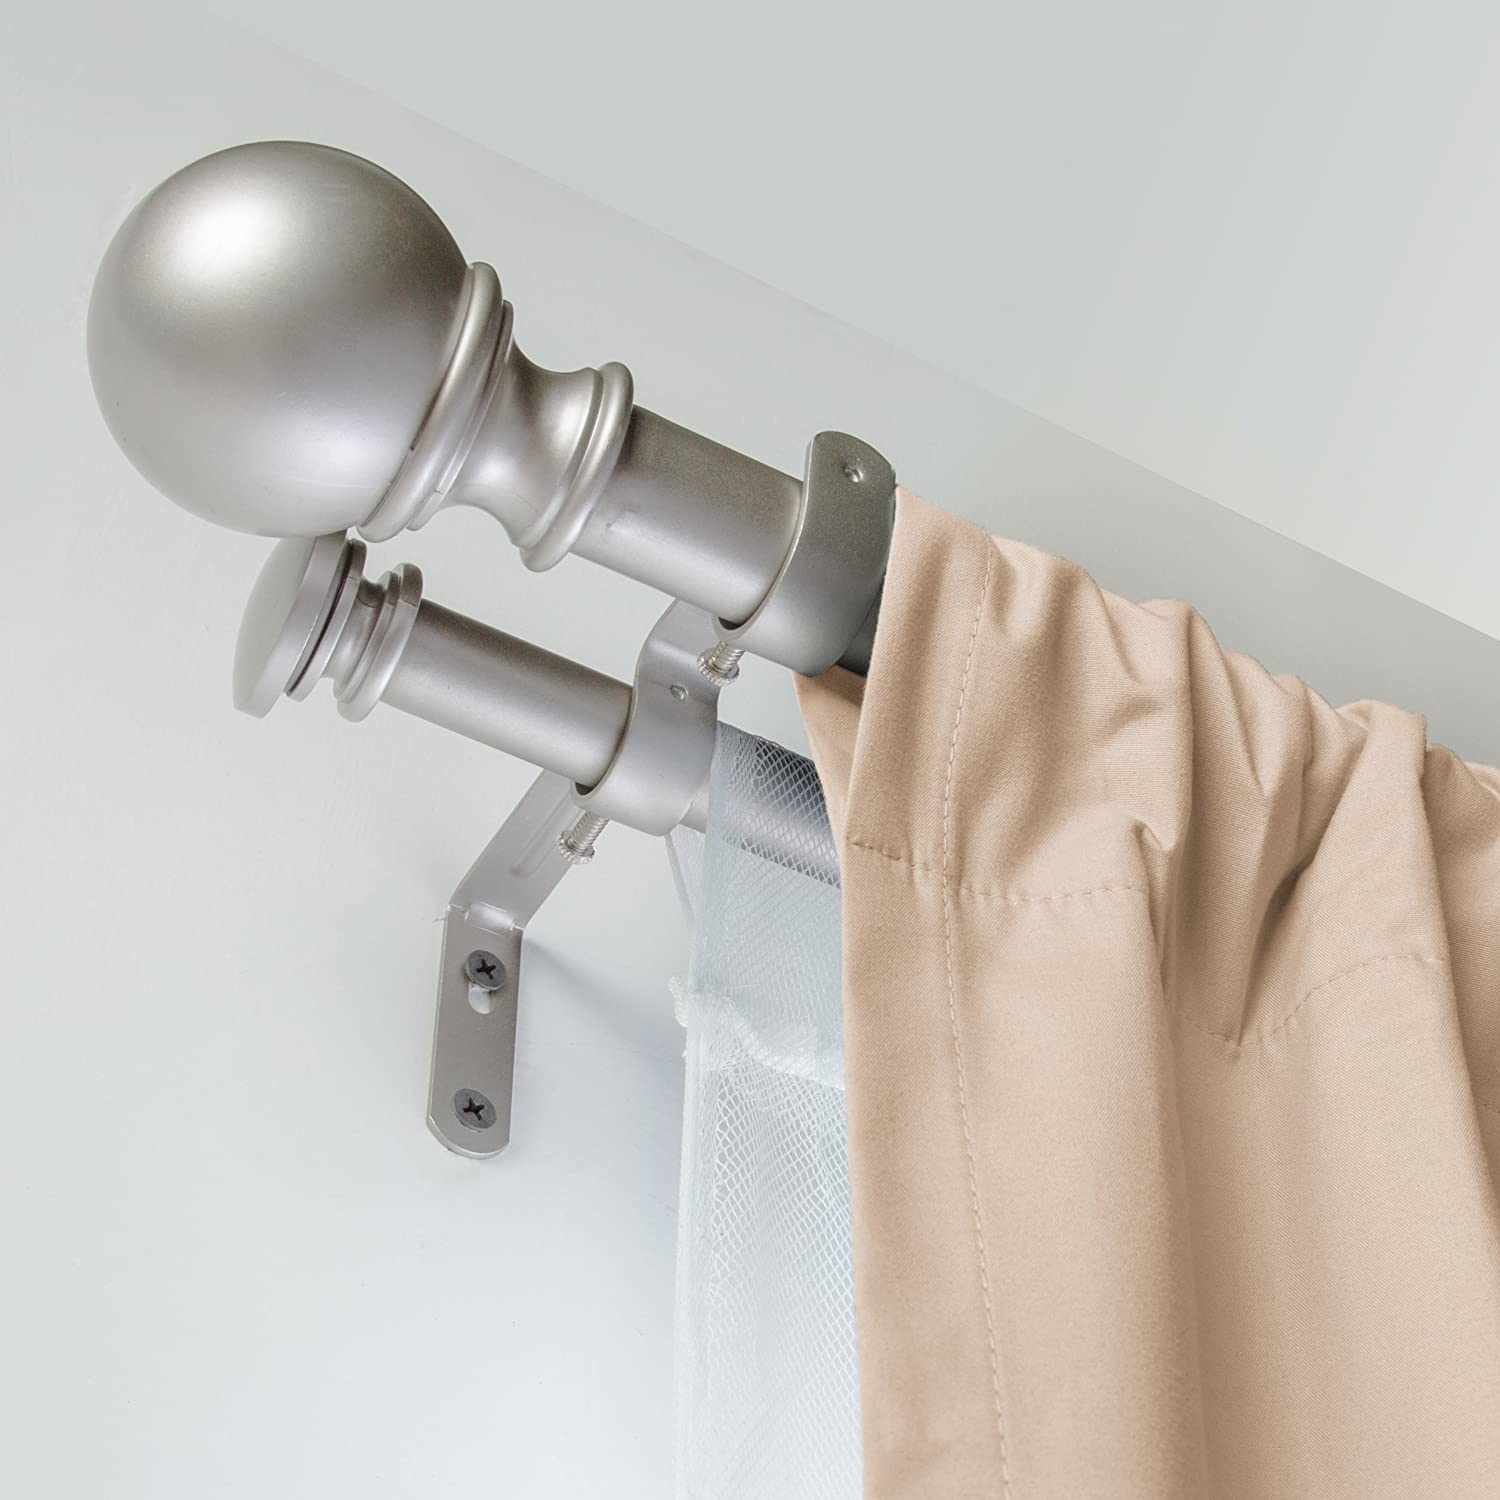 "AmazonBasics 1"" Double Curtain Rod with Round Finials - 72"" to 144"", Nickel"